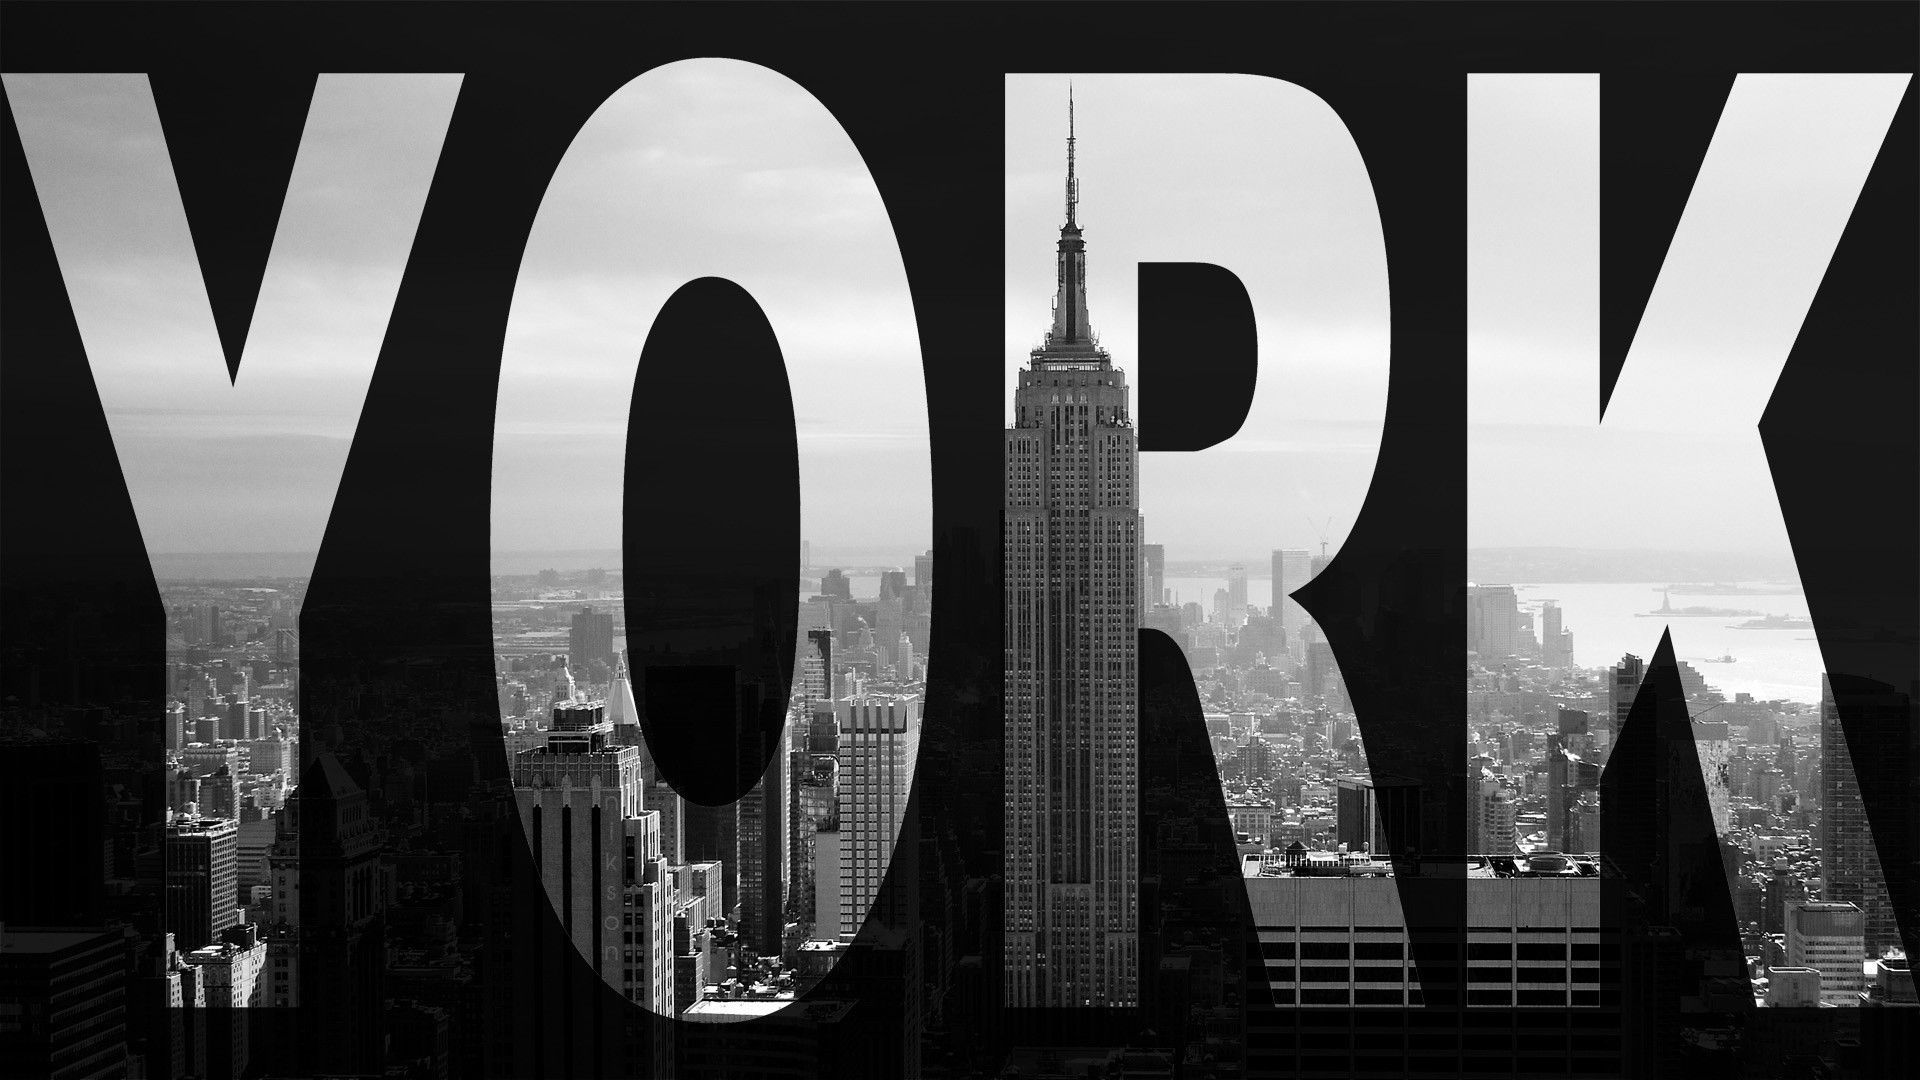 New york wallpapers images photos pictures backgrounds New all hd video